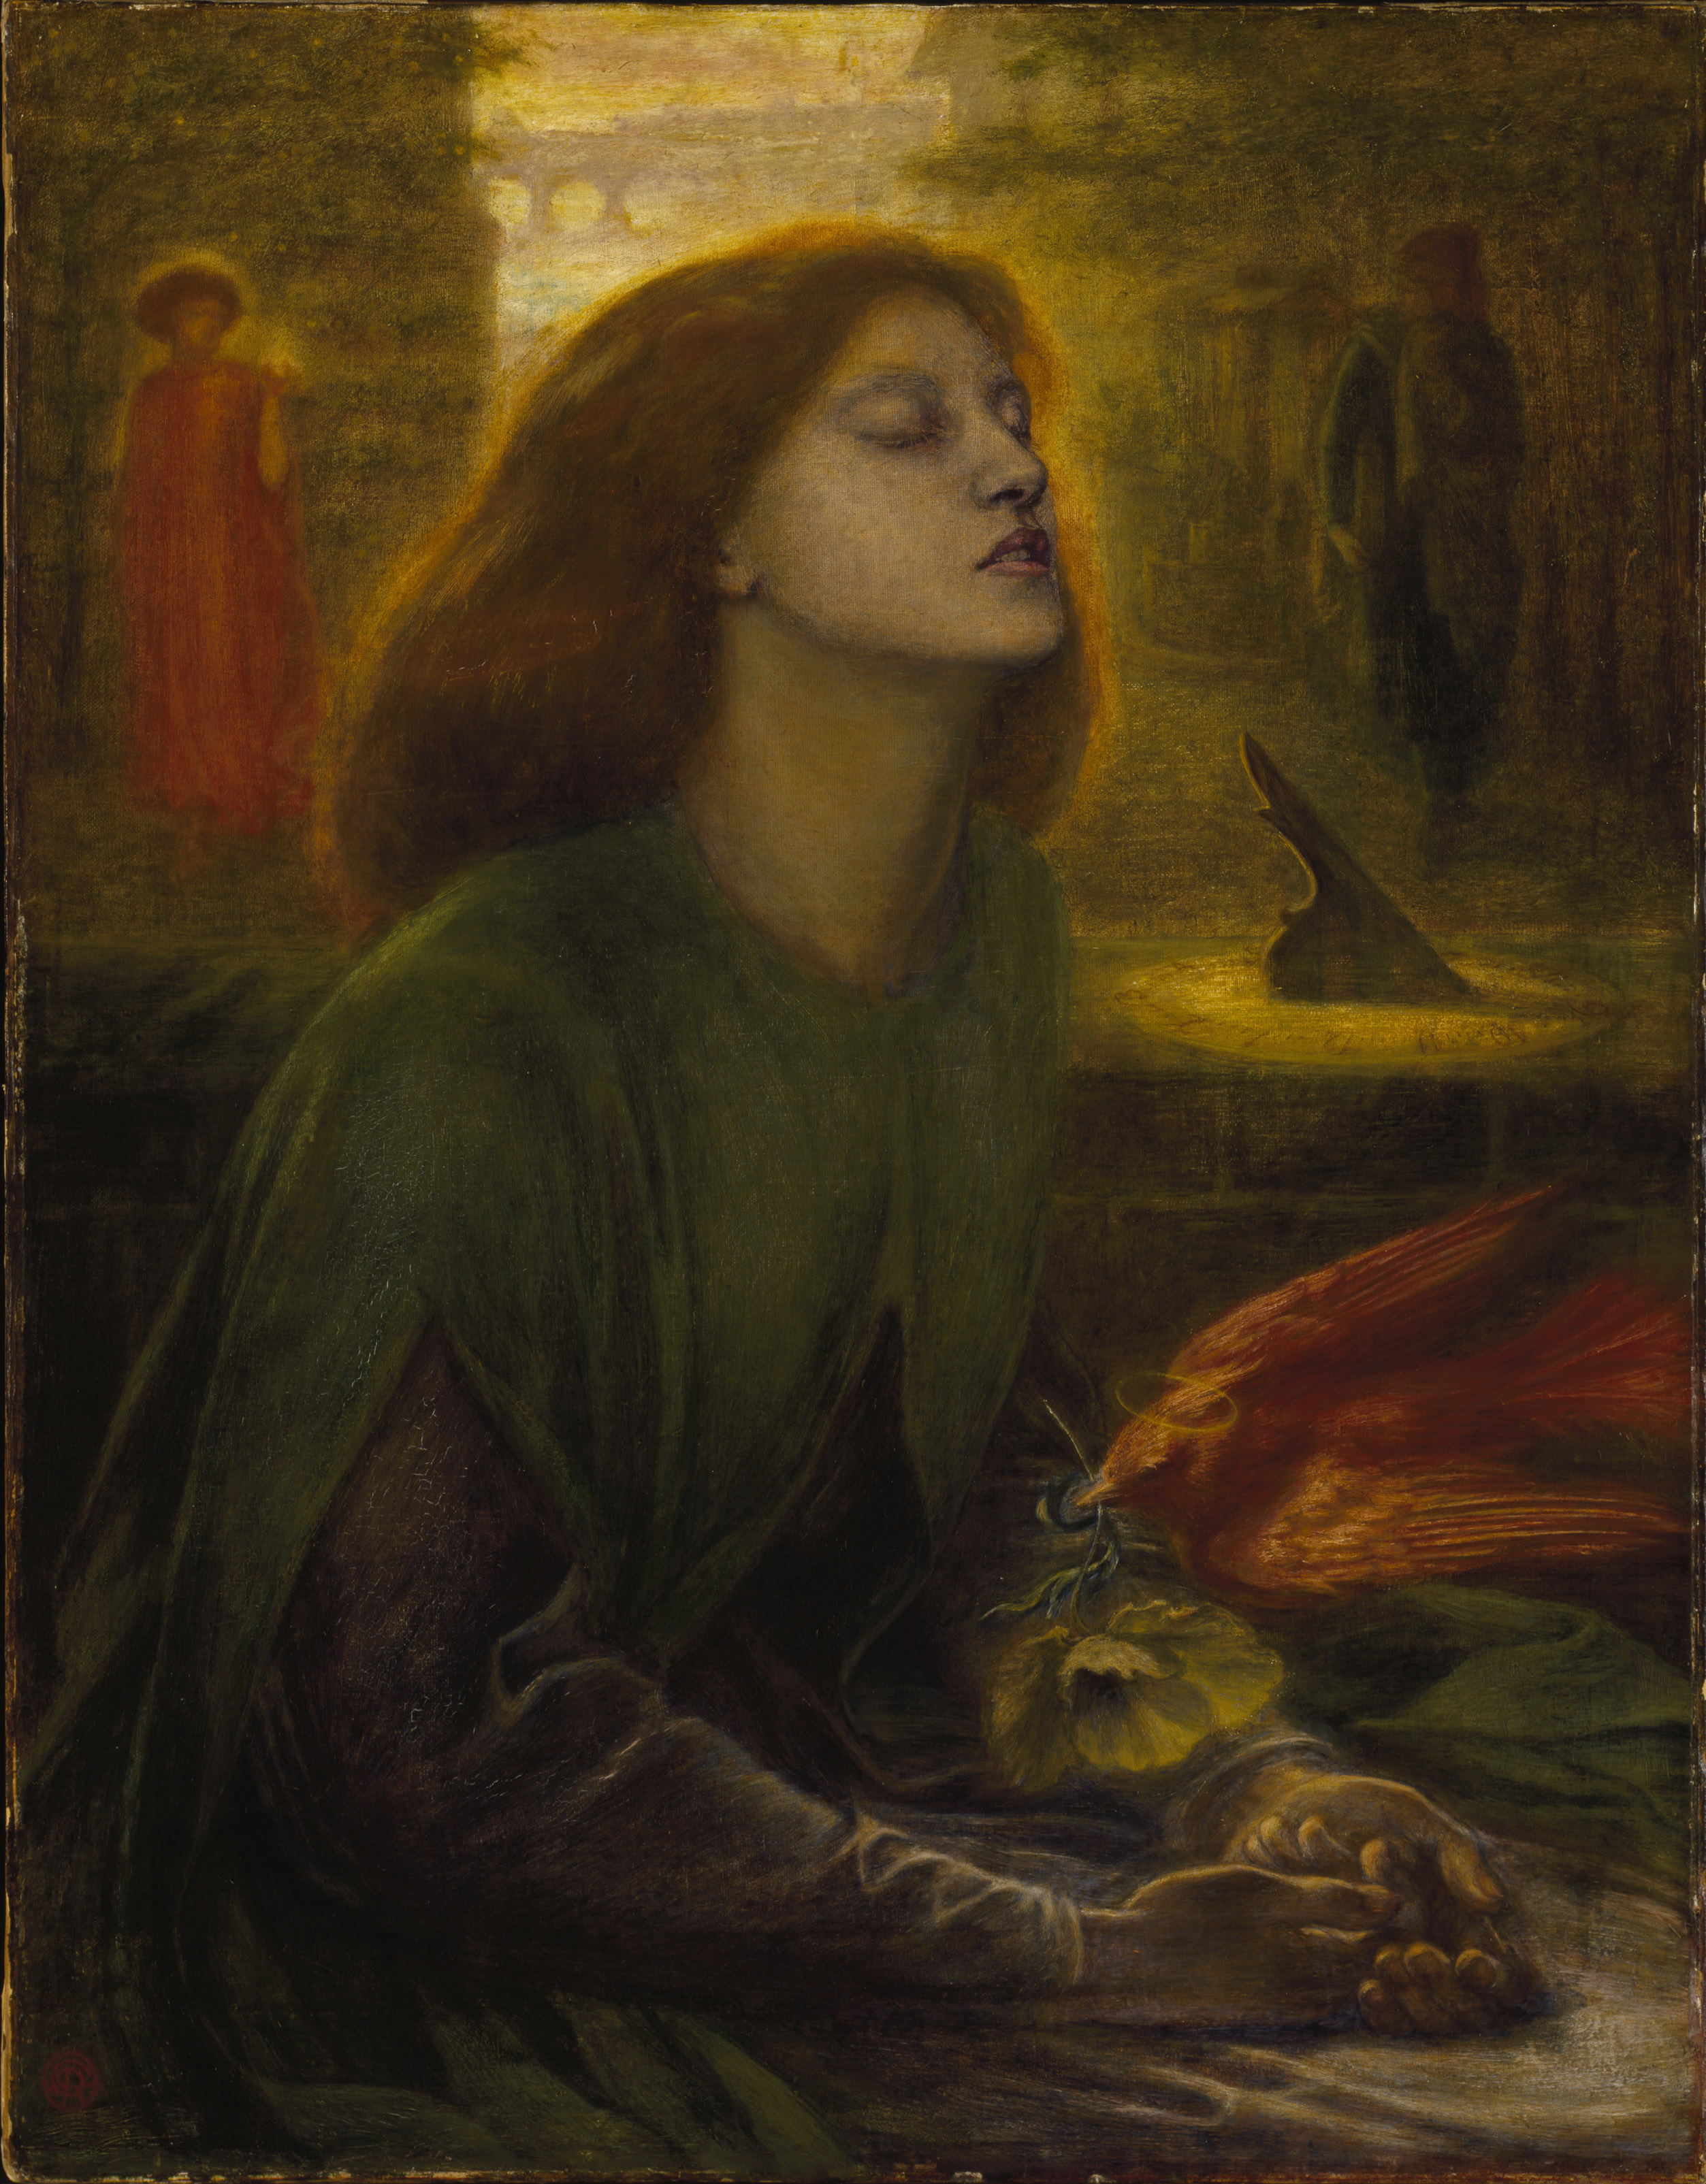 https://i0.wp.com/upload.wikimedia.org/wikipedia/commons/c/cf/Dante_Gabriel_Rossetti_-_Beata_Beatrix%2C_1864-1870.jpg